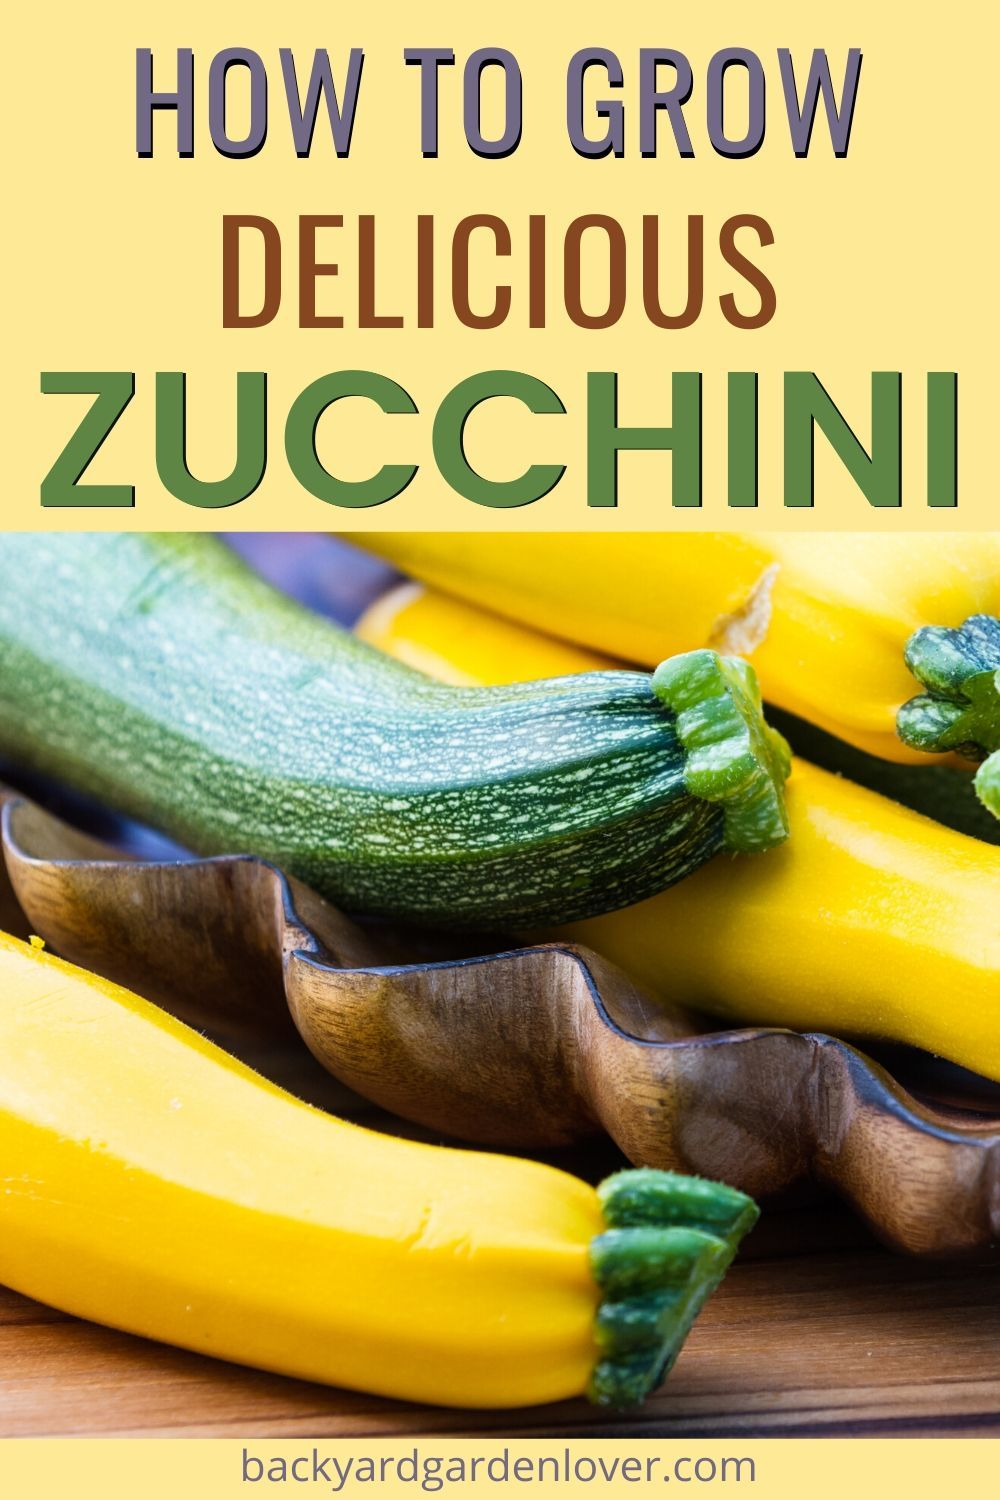 How To Plant And Grow Zucchini Guide To A Bountiful Harvest Growing Zucchini Grow Zucchini Zucchini Growing Backyard garden how to zucchini